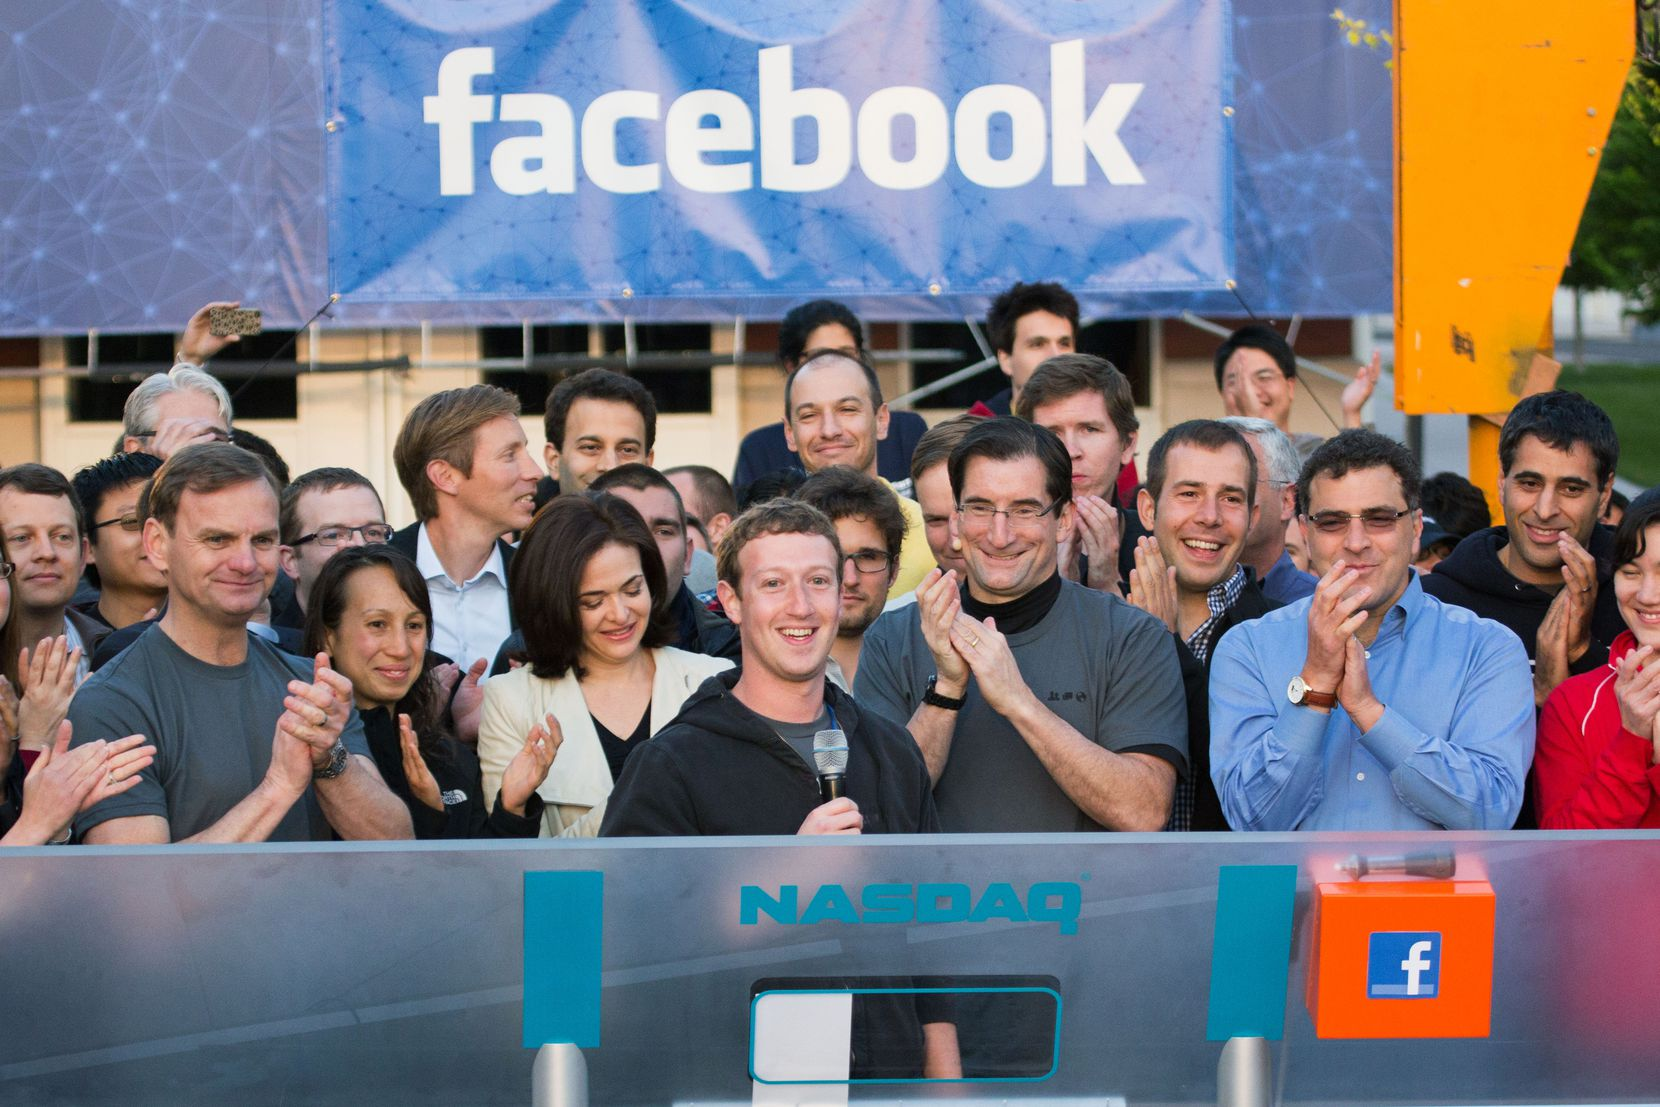 In this image provided by Facebook, Facebook founder, chairman and CEO Mark Zuckerberg, center, rang the opening bell of the Nasdaq stock market on May 18, 2012, from Facebook headquarters in Menlo Park, Calif. The social media company had priced its IPO at $38 per share, and that Friday regular investors got chance to buy shares.